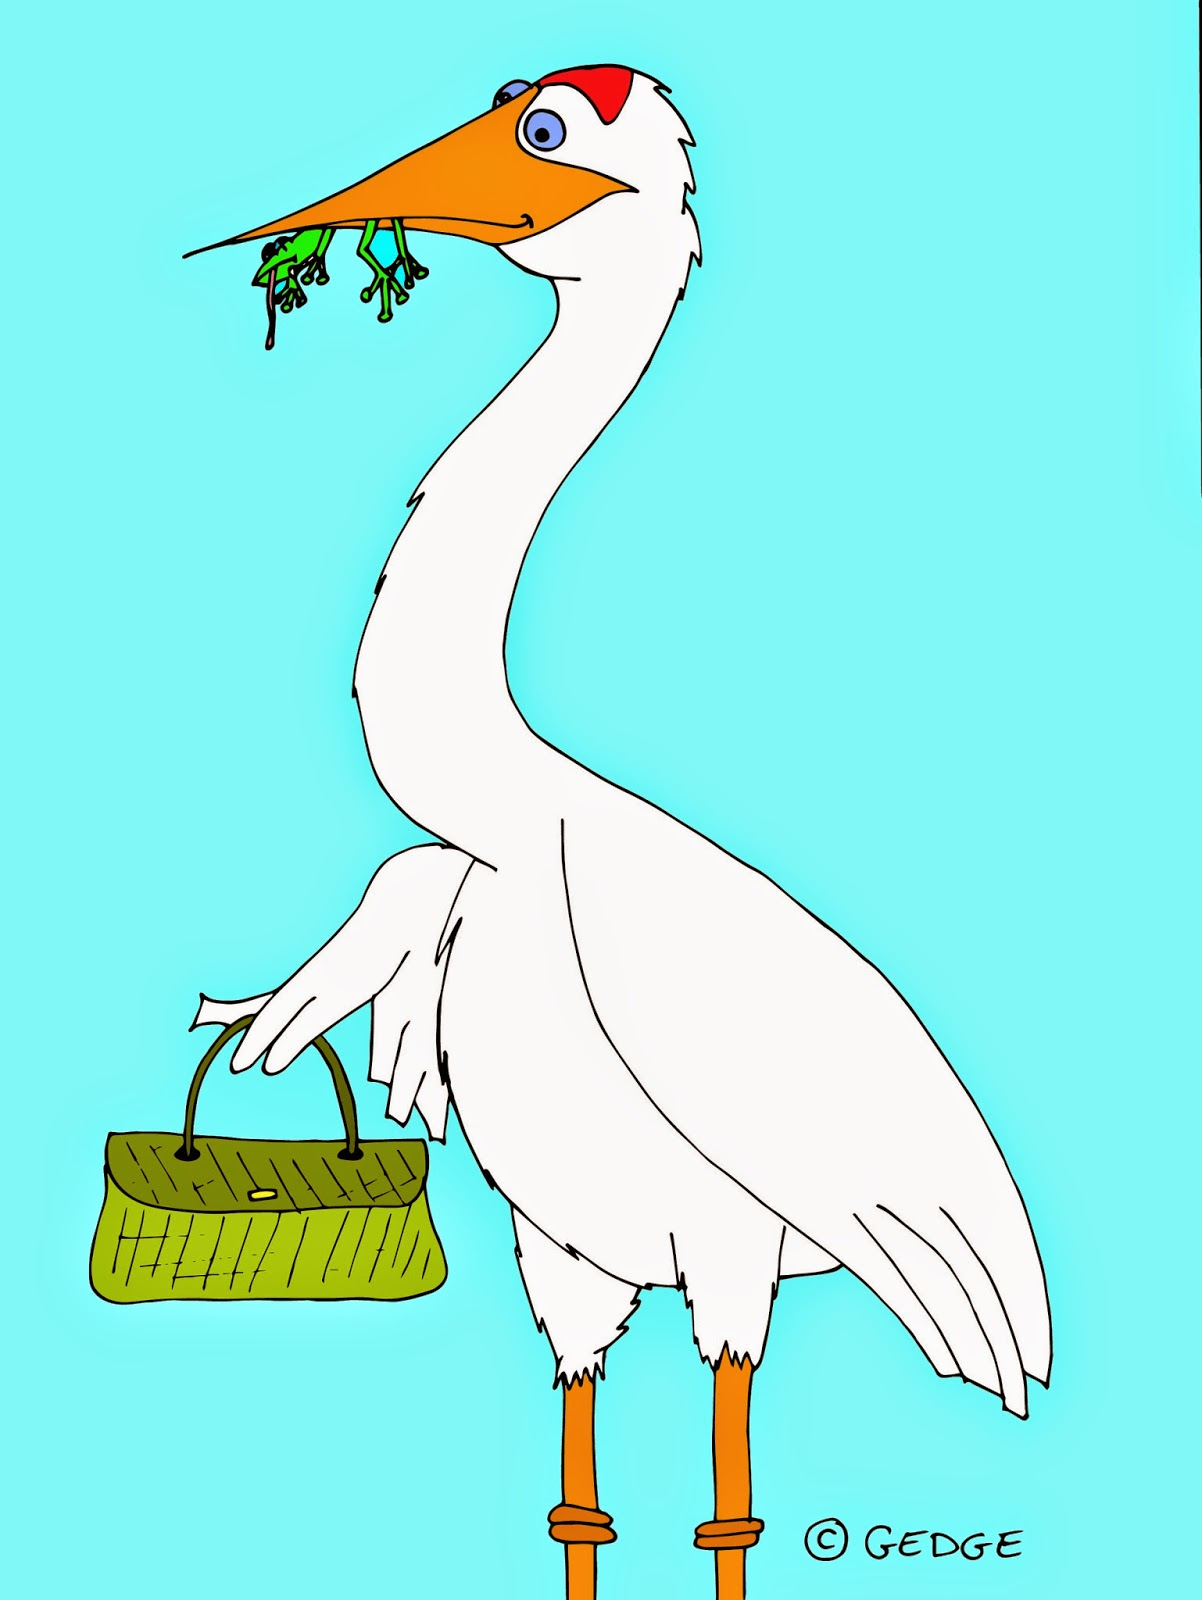 A crane (bird) with a dead frog in its mouth holding a handbag